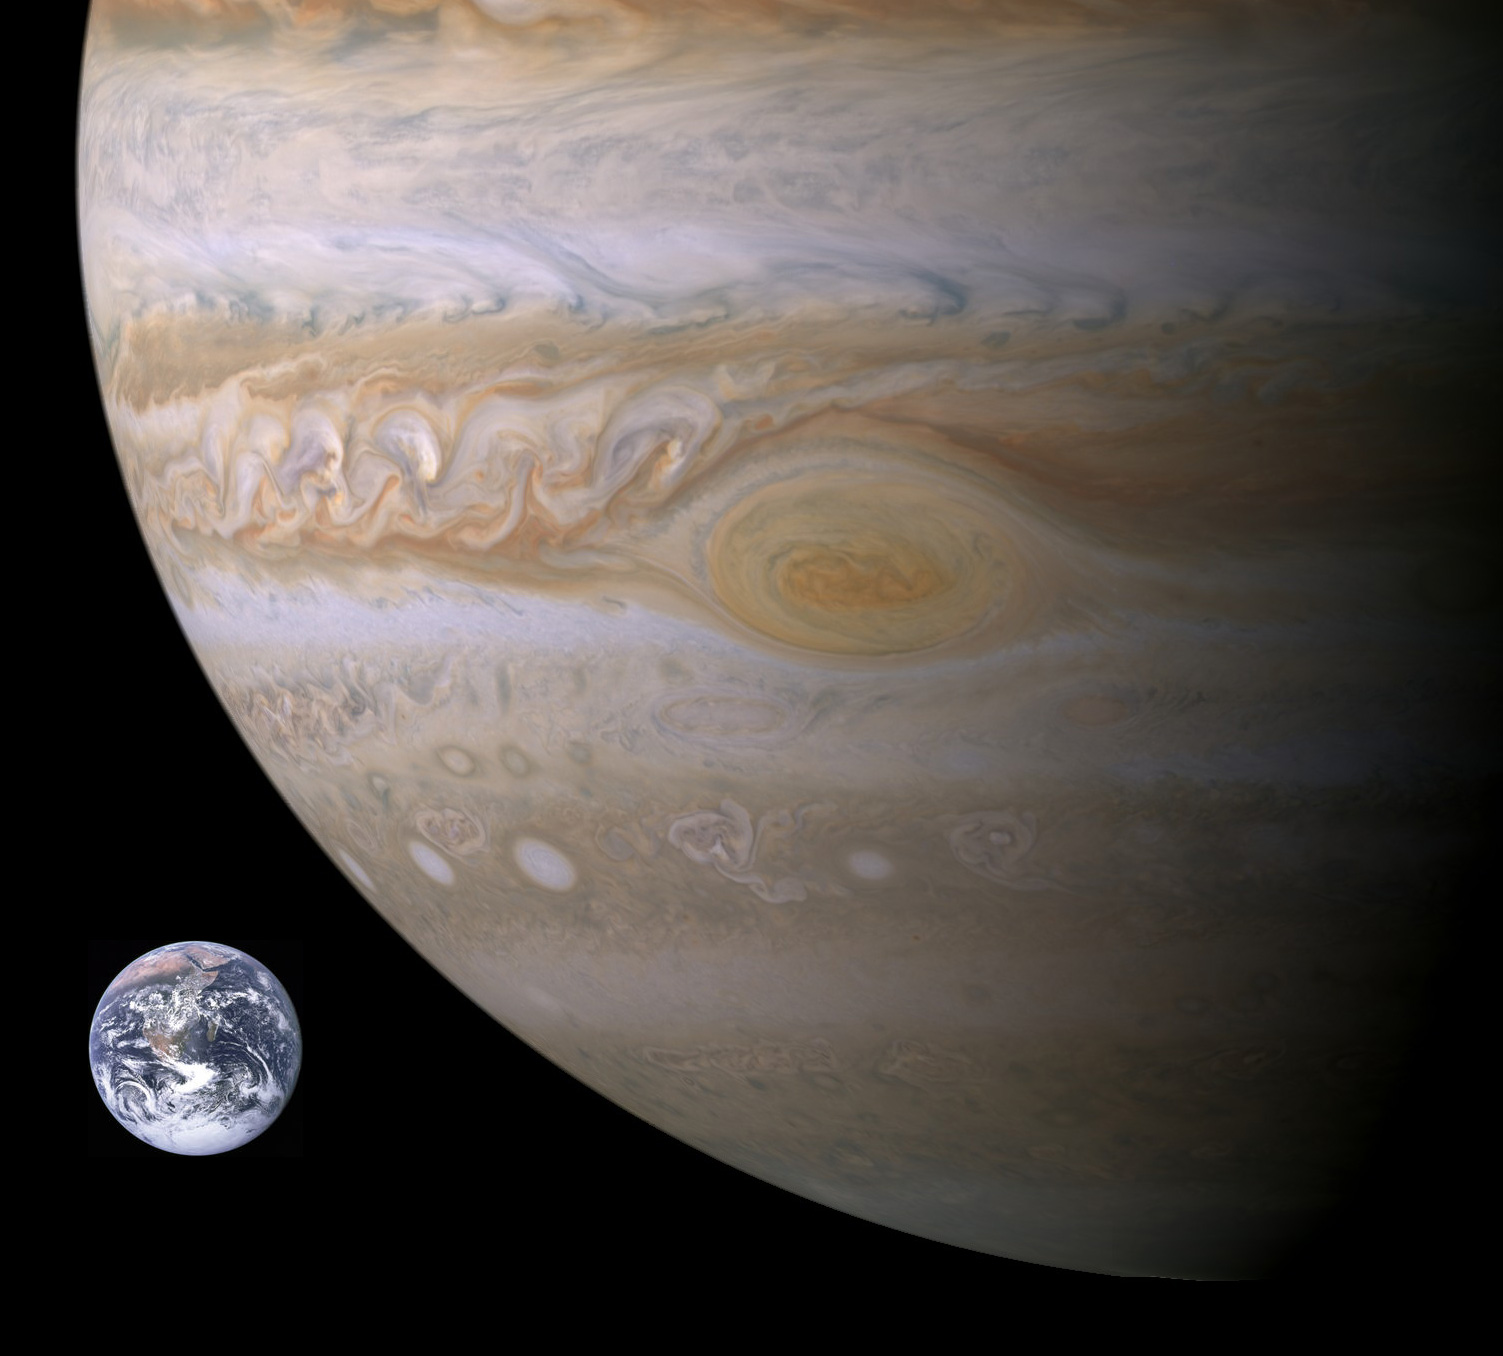 Jupiter Moons Compared To Earth Page 3